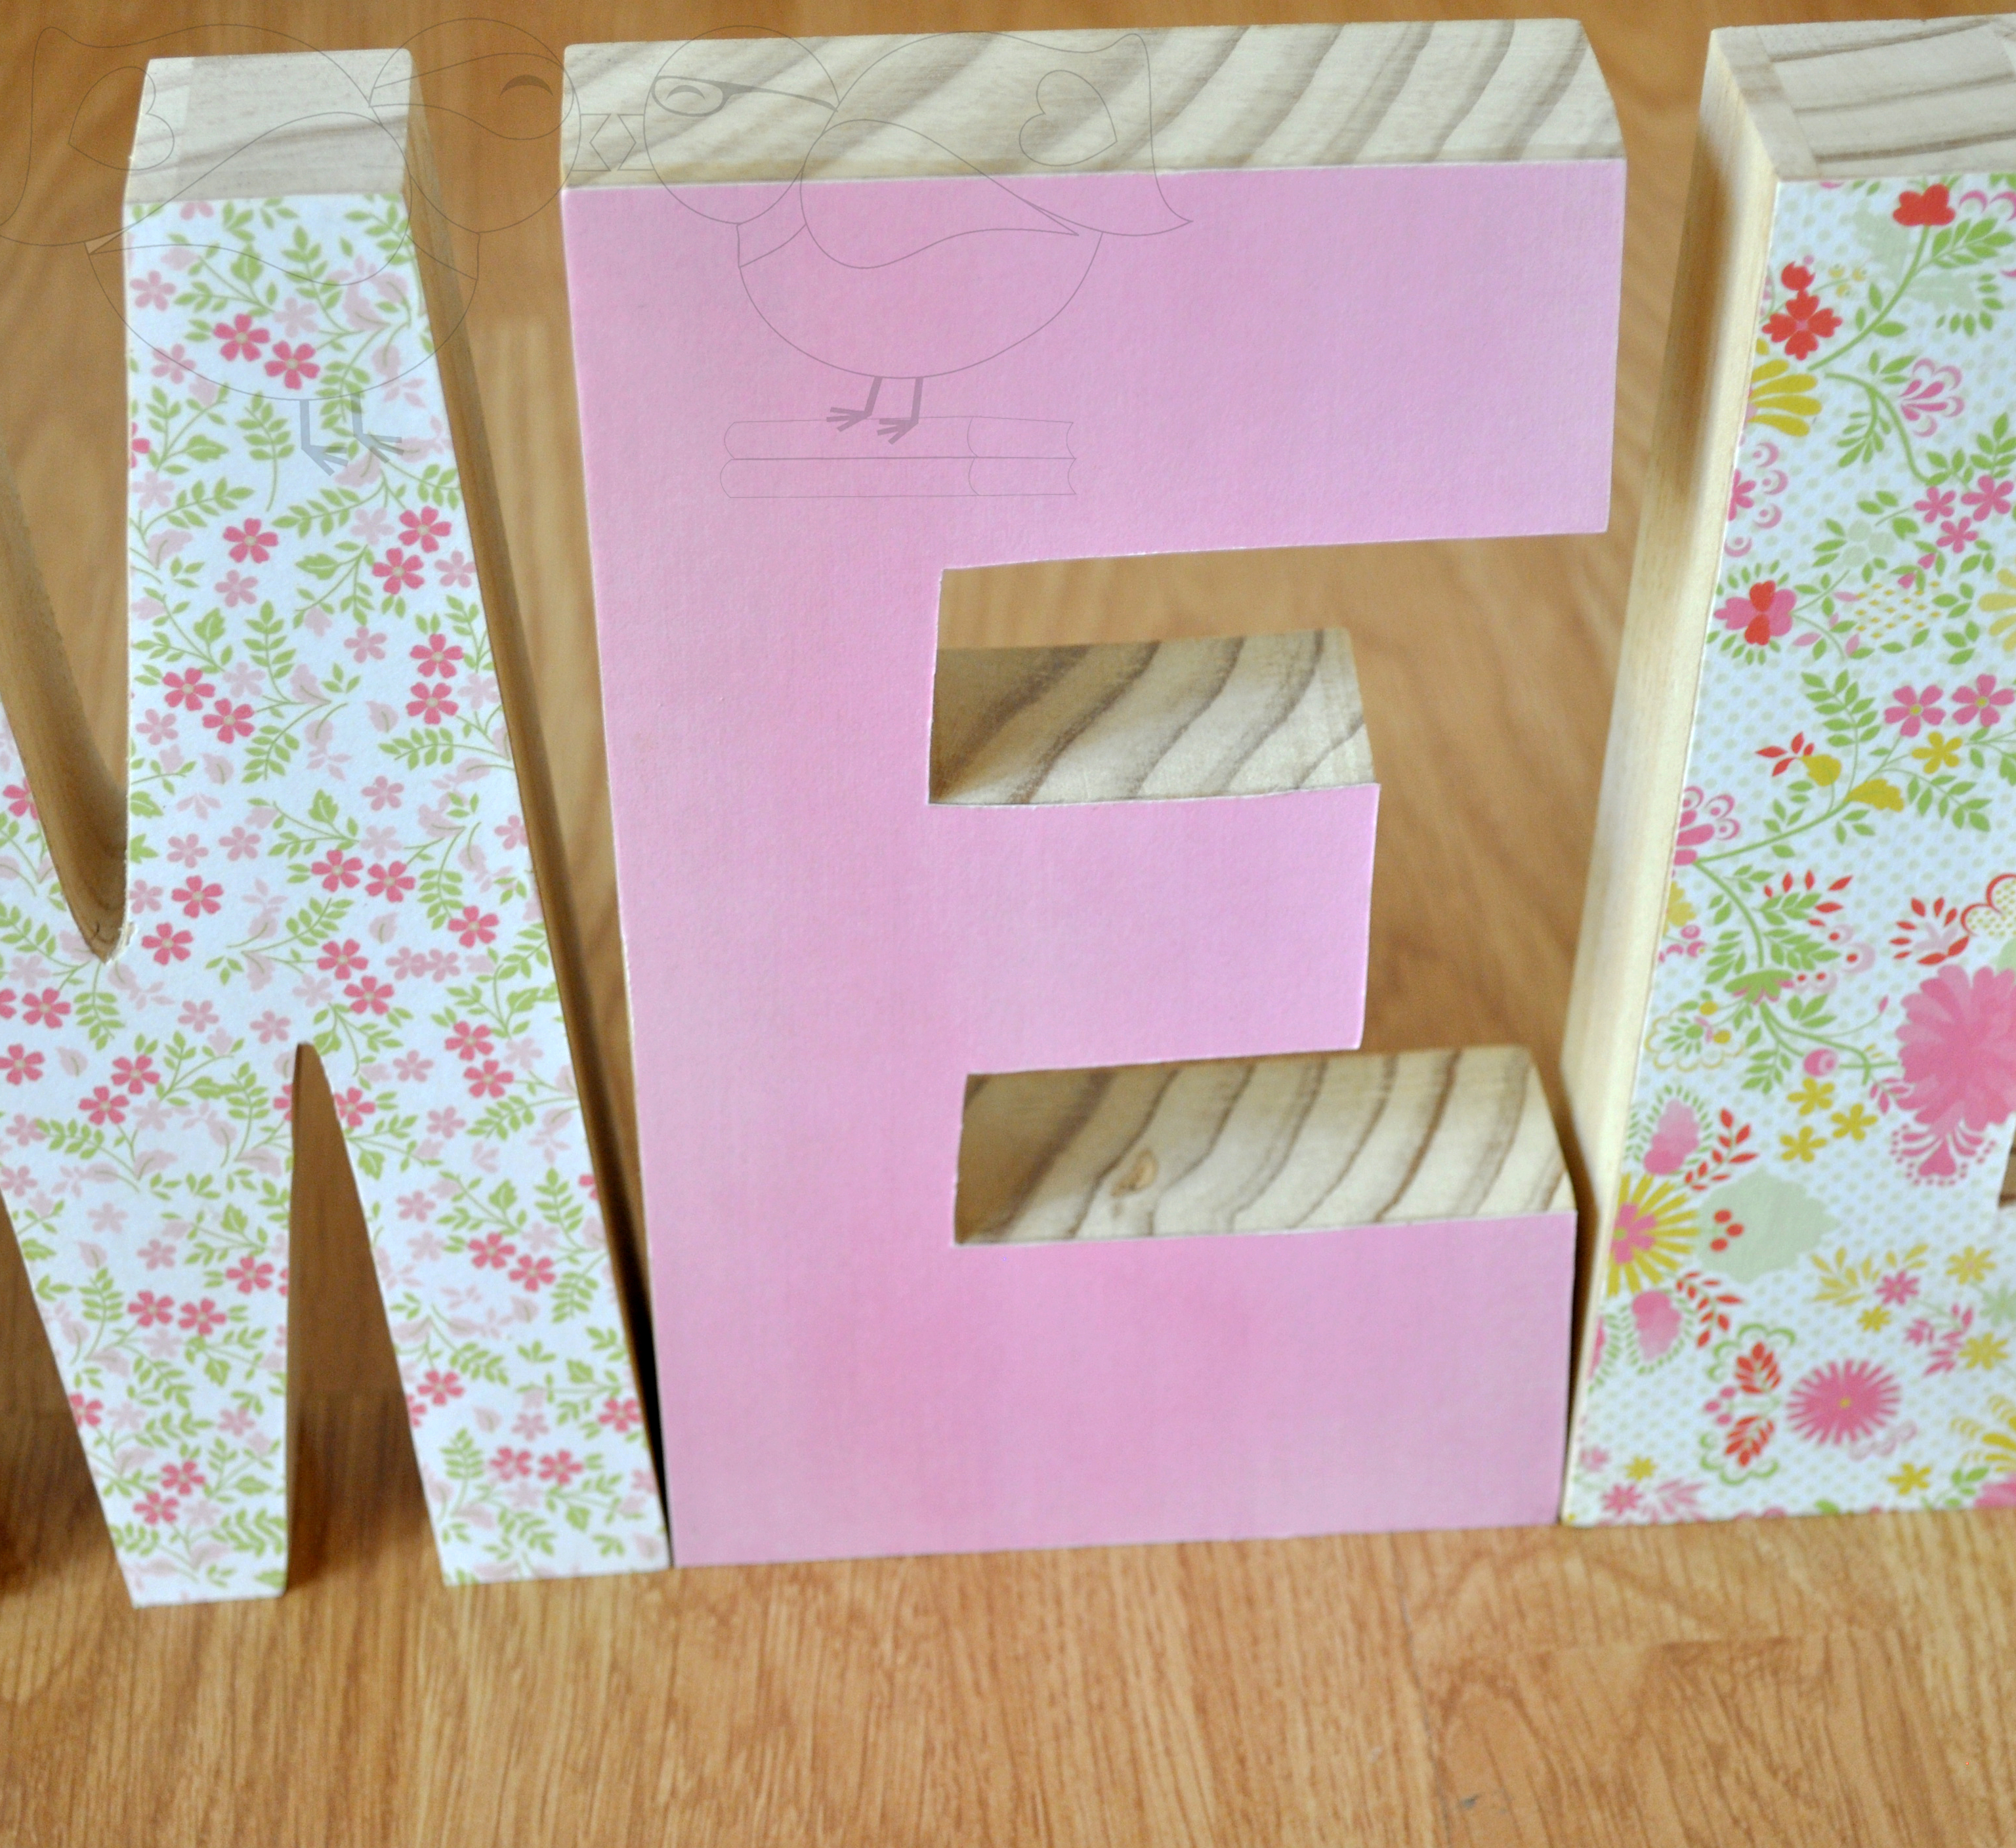 Decorative Wooden Letters- Perfect Gift for New Baby - The Love Nerds